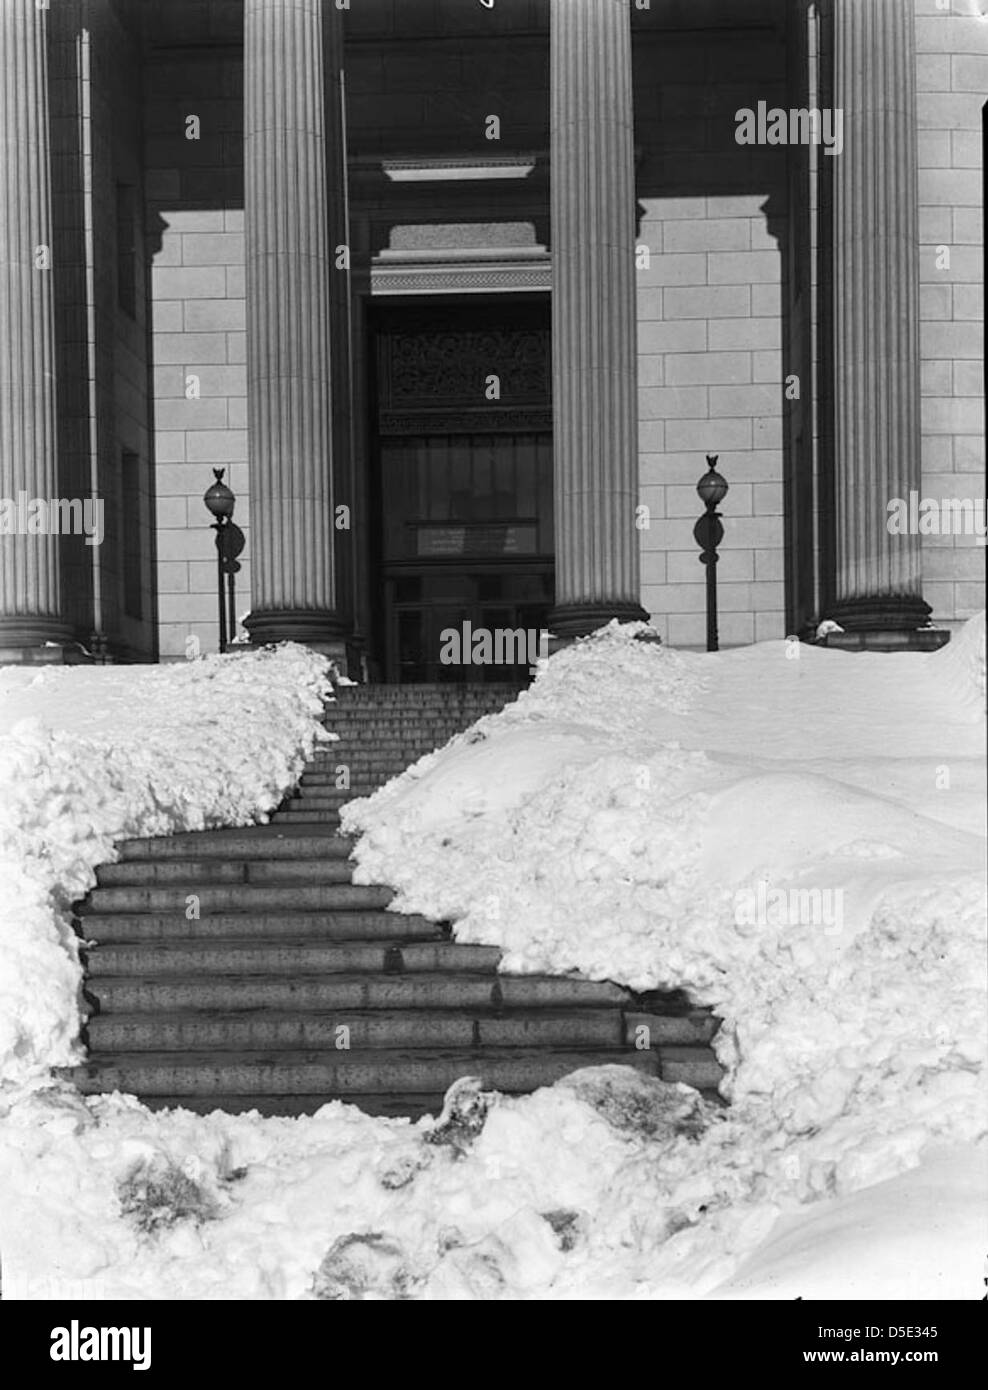 Natural History Building After Snow Storm - Stock Image